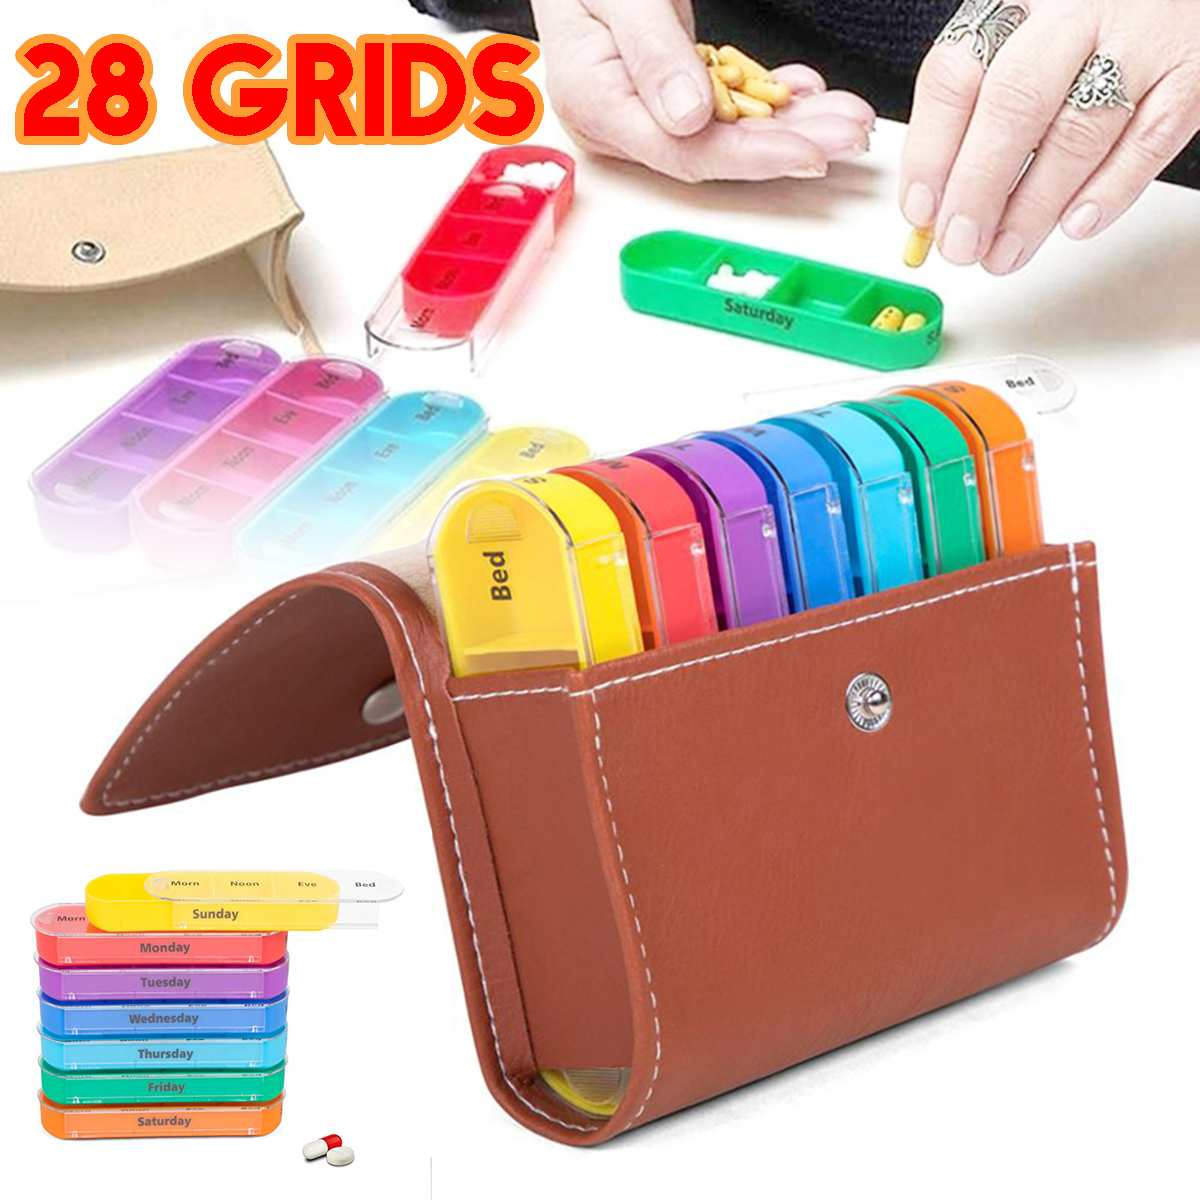 Portable 28 Grids Travel Weekly Pills Box Holder Medicine Tablet Organizer With PU Leather Storage Bag Dispenser 4 Times Per Day